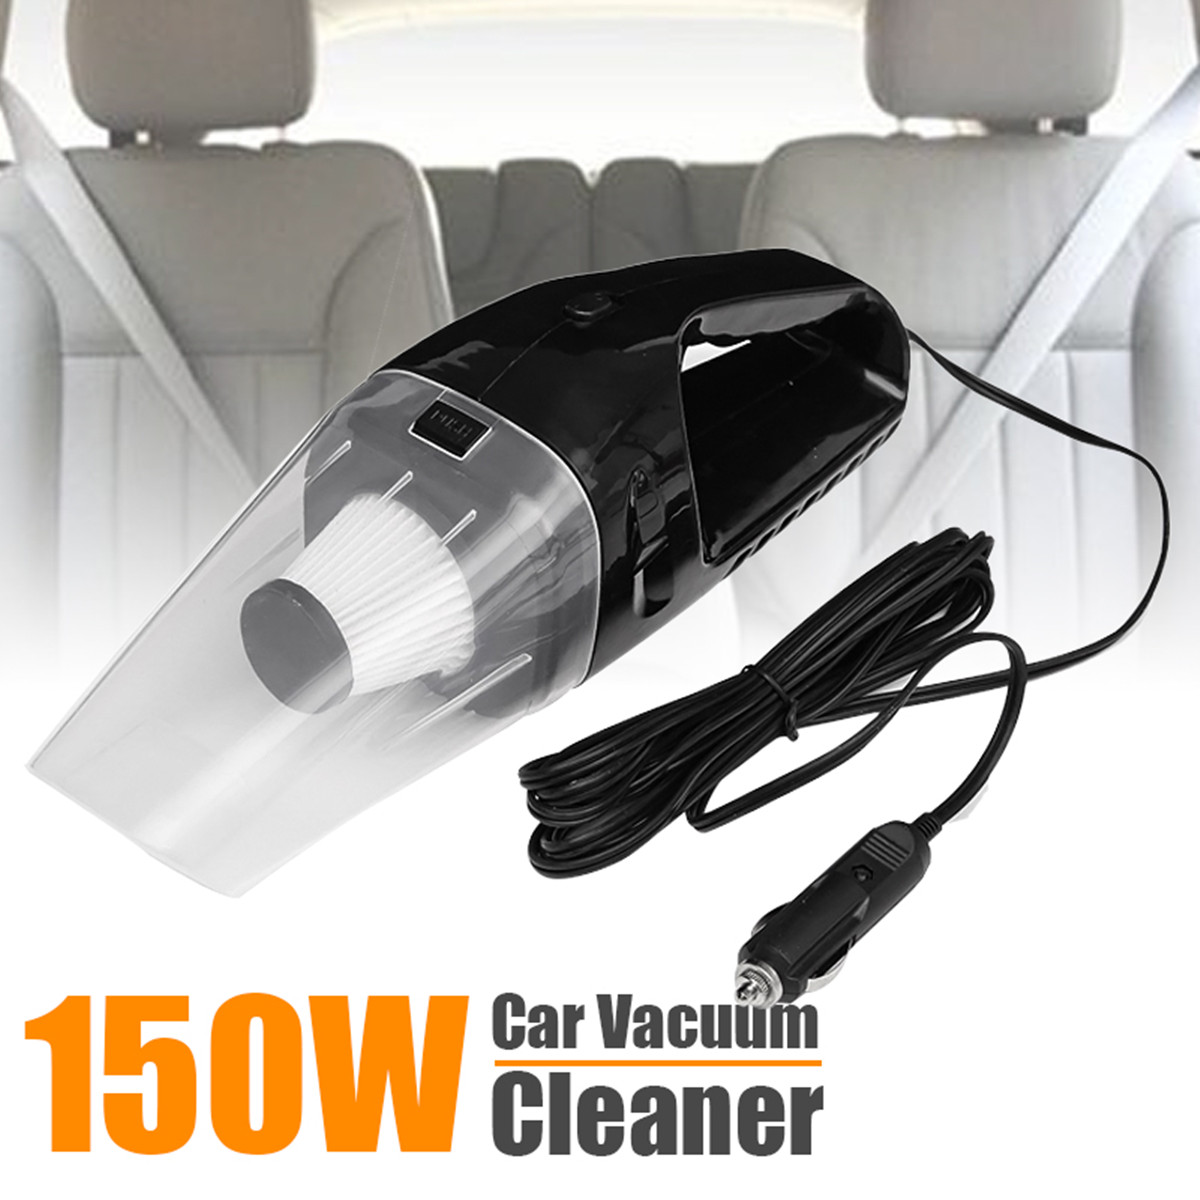 Car Vacuum Cleaner 150W 12V Portable Handheld Auto Vacuum Cleaner Wet Dry Duster Aspirateur Voiture